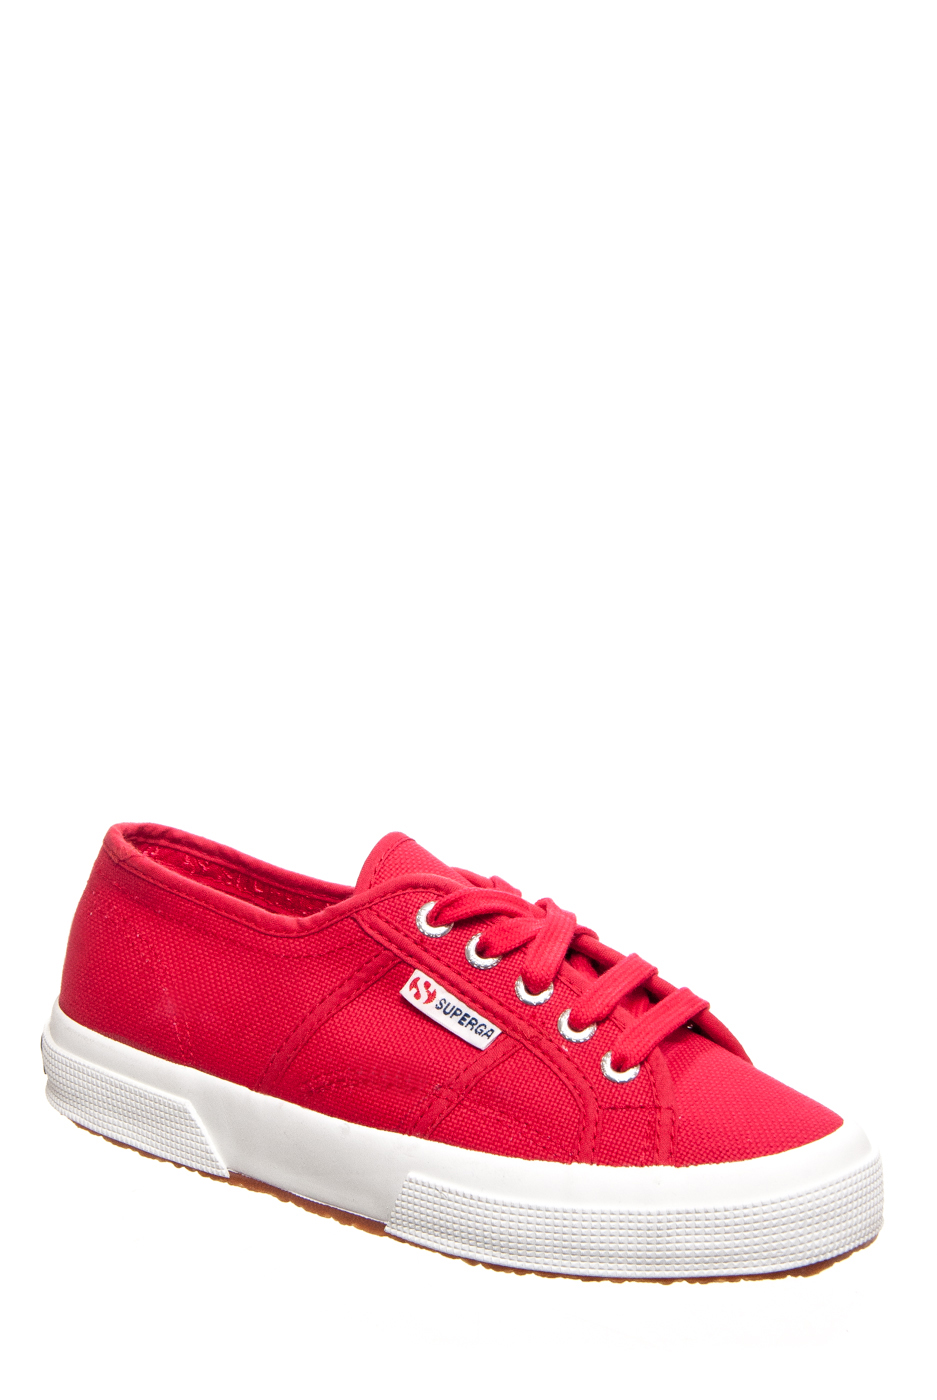 SUPERGA 2750 Cotu Classic Low Top Sneakers - Red